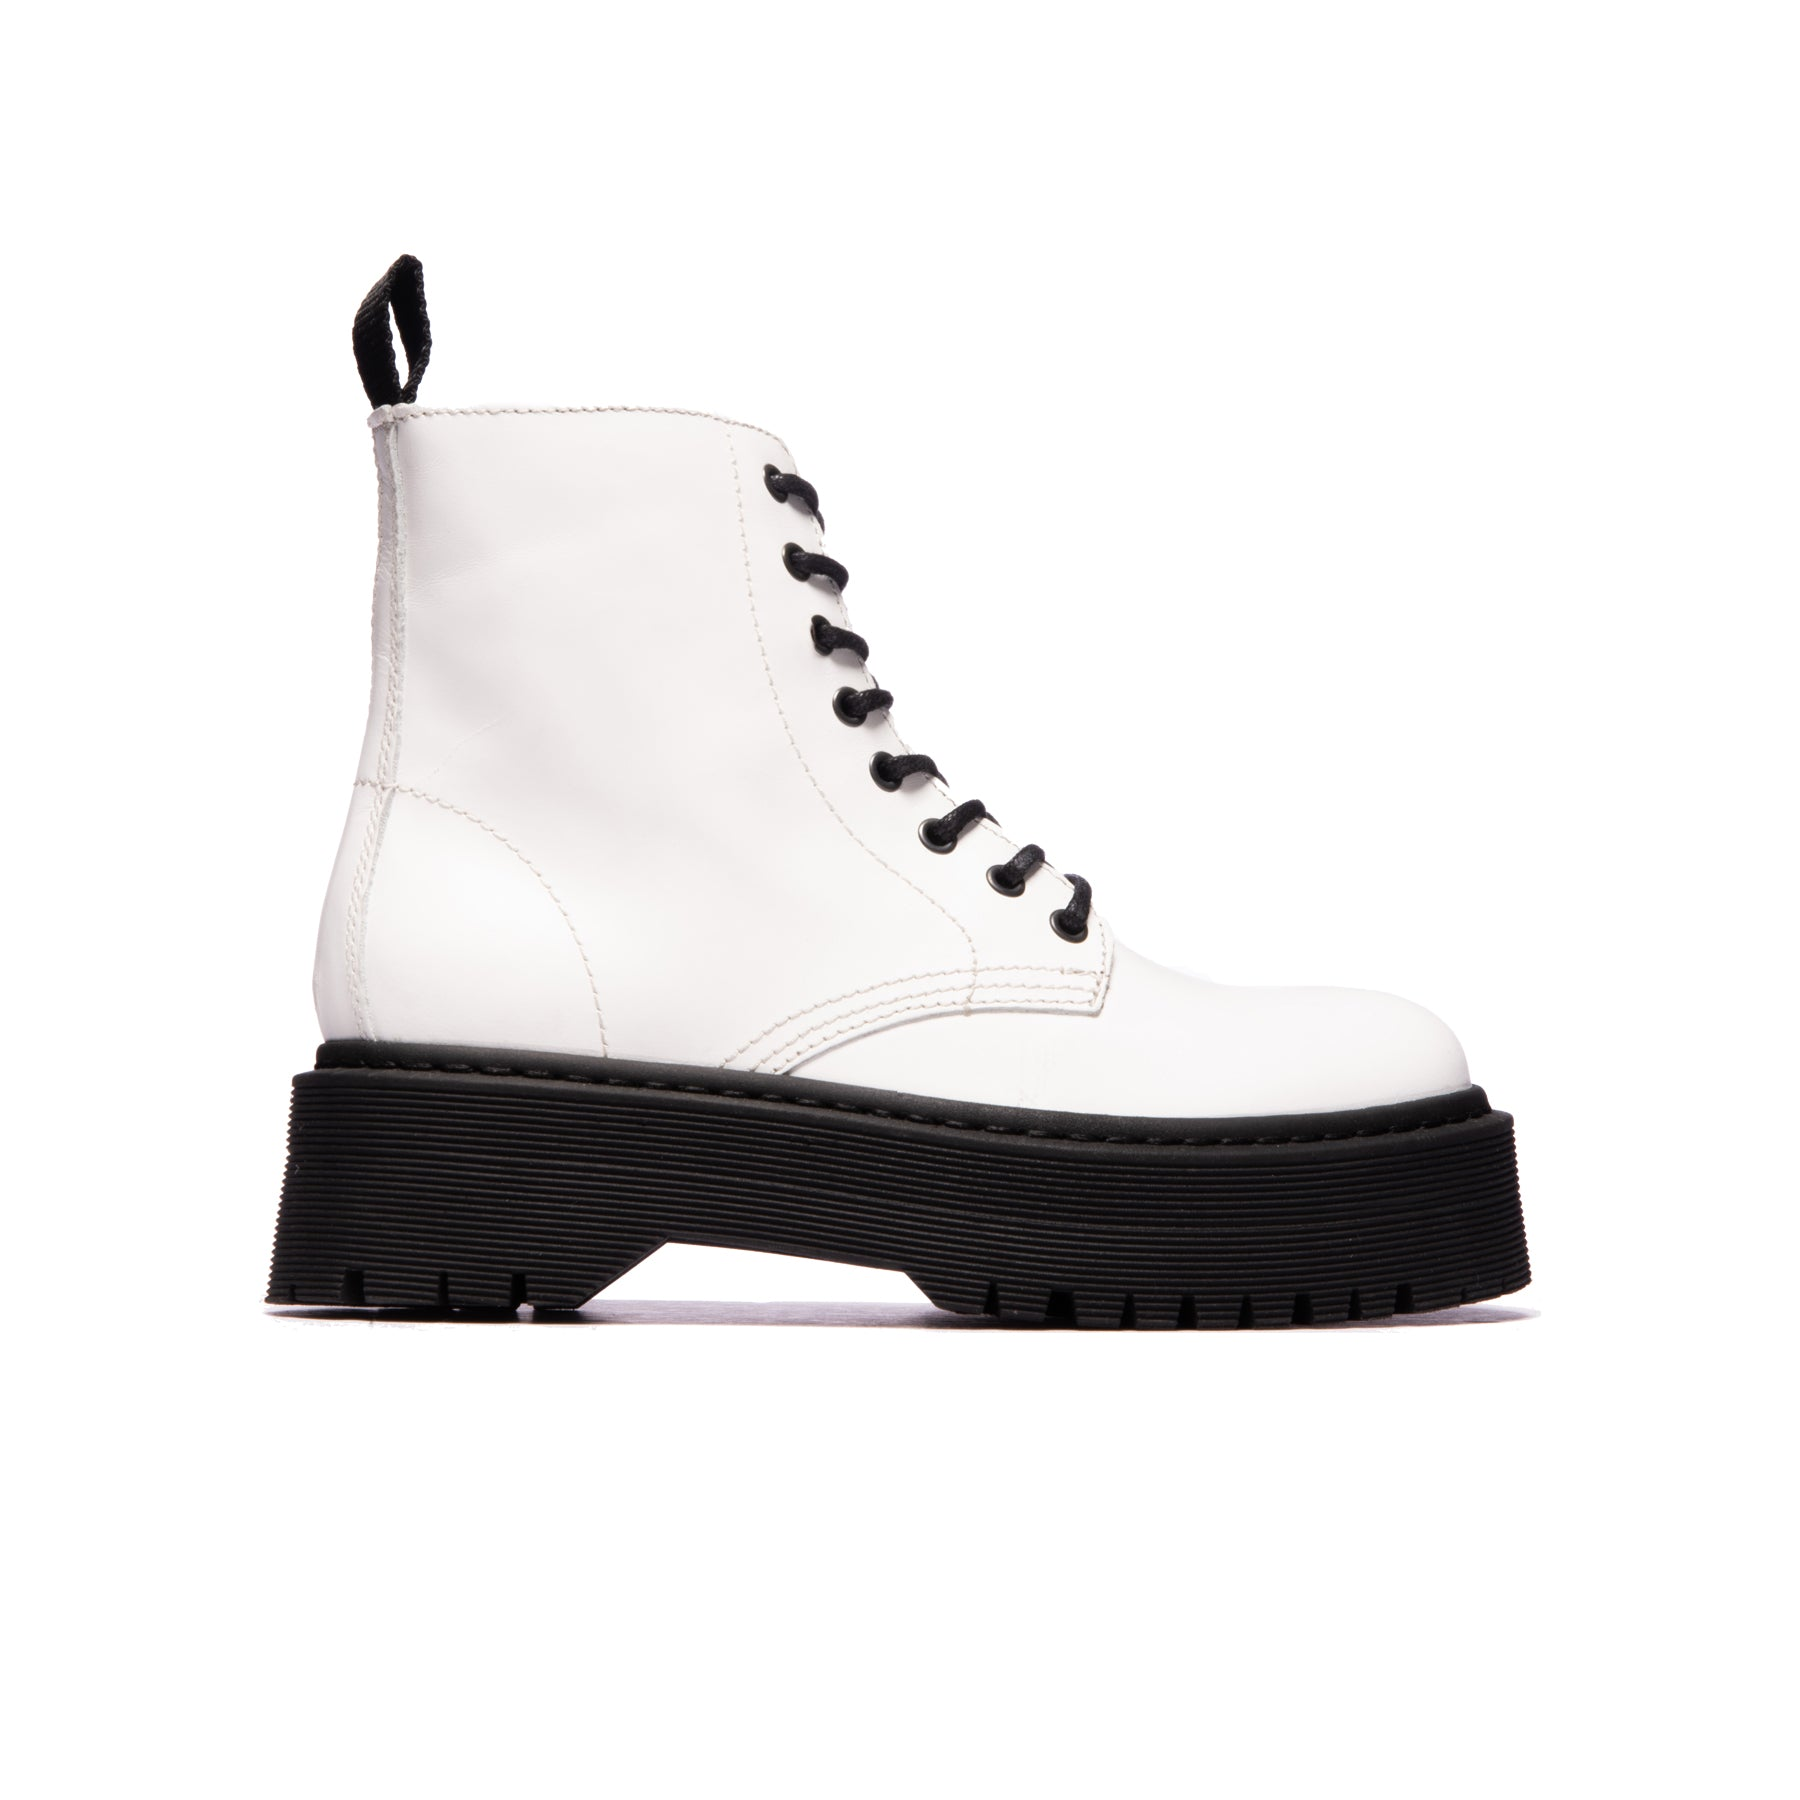 Josta White Leather